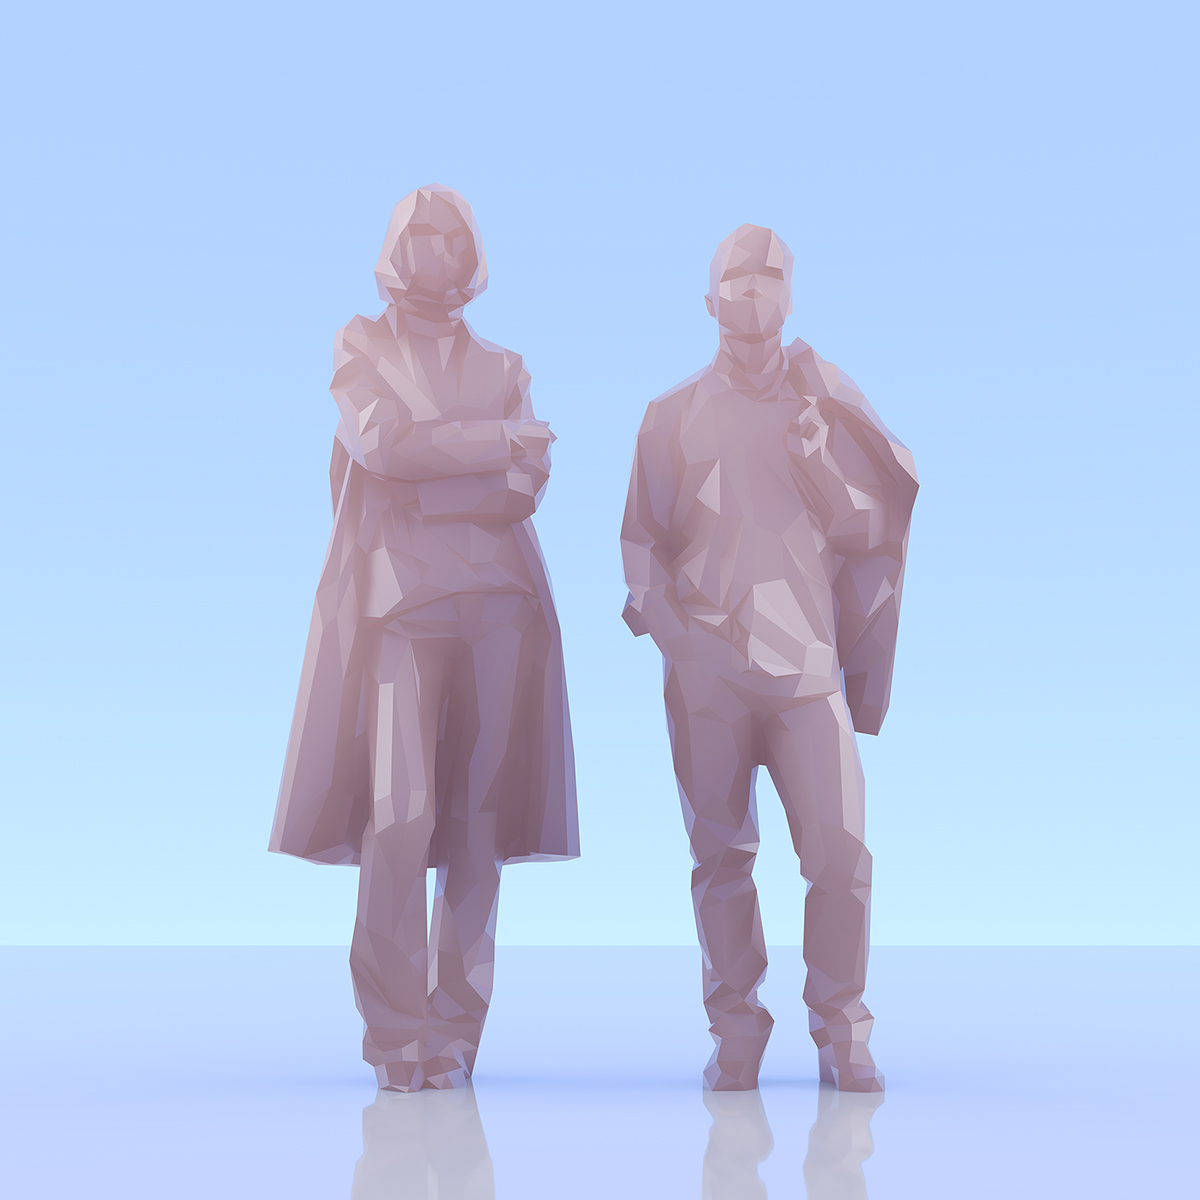 This was HomoSapiens II 001 1 - 2019 - This was HomoSapiens. II. (LowPoly People)